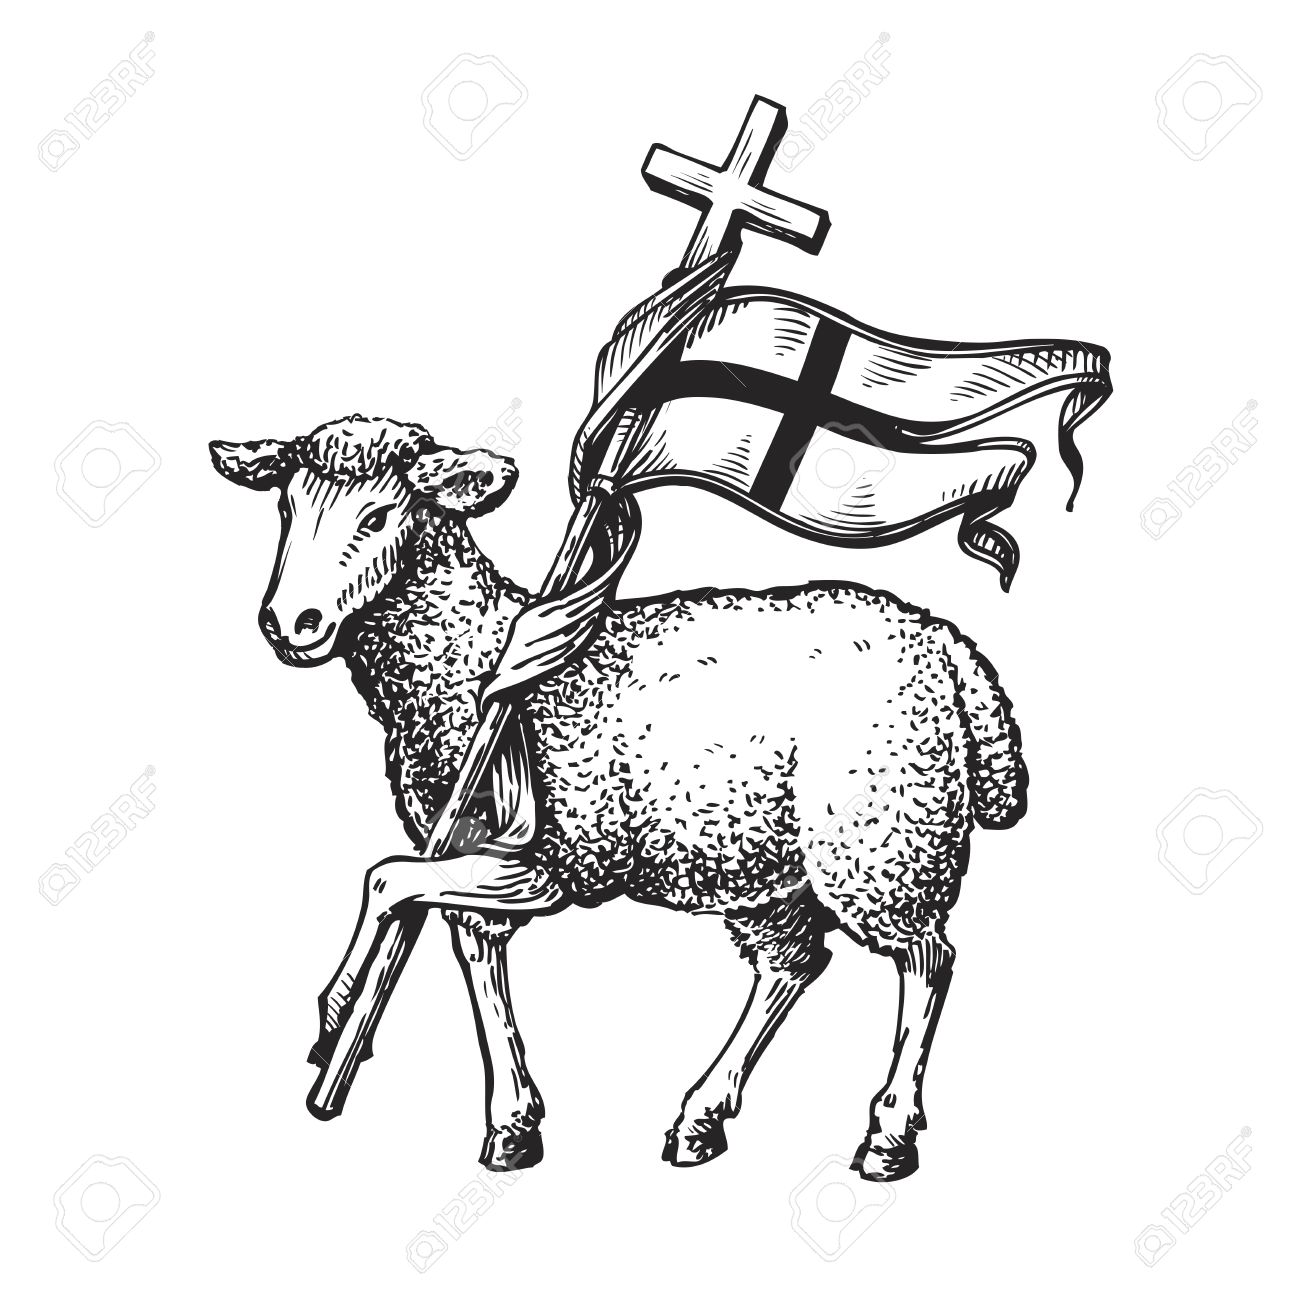 Lamb With Cross Religion Symbol Sketch Vector Illustration Isolated On White Background